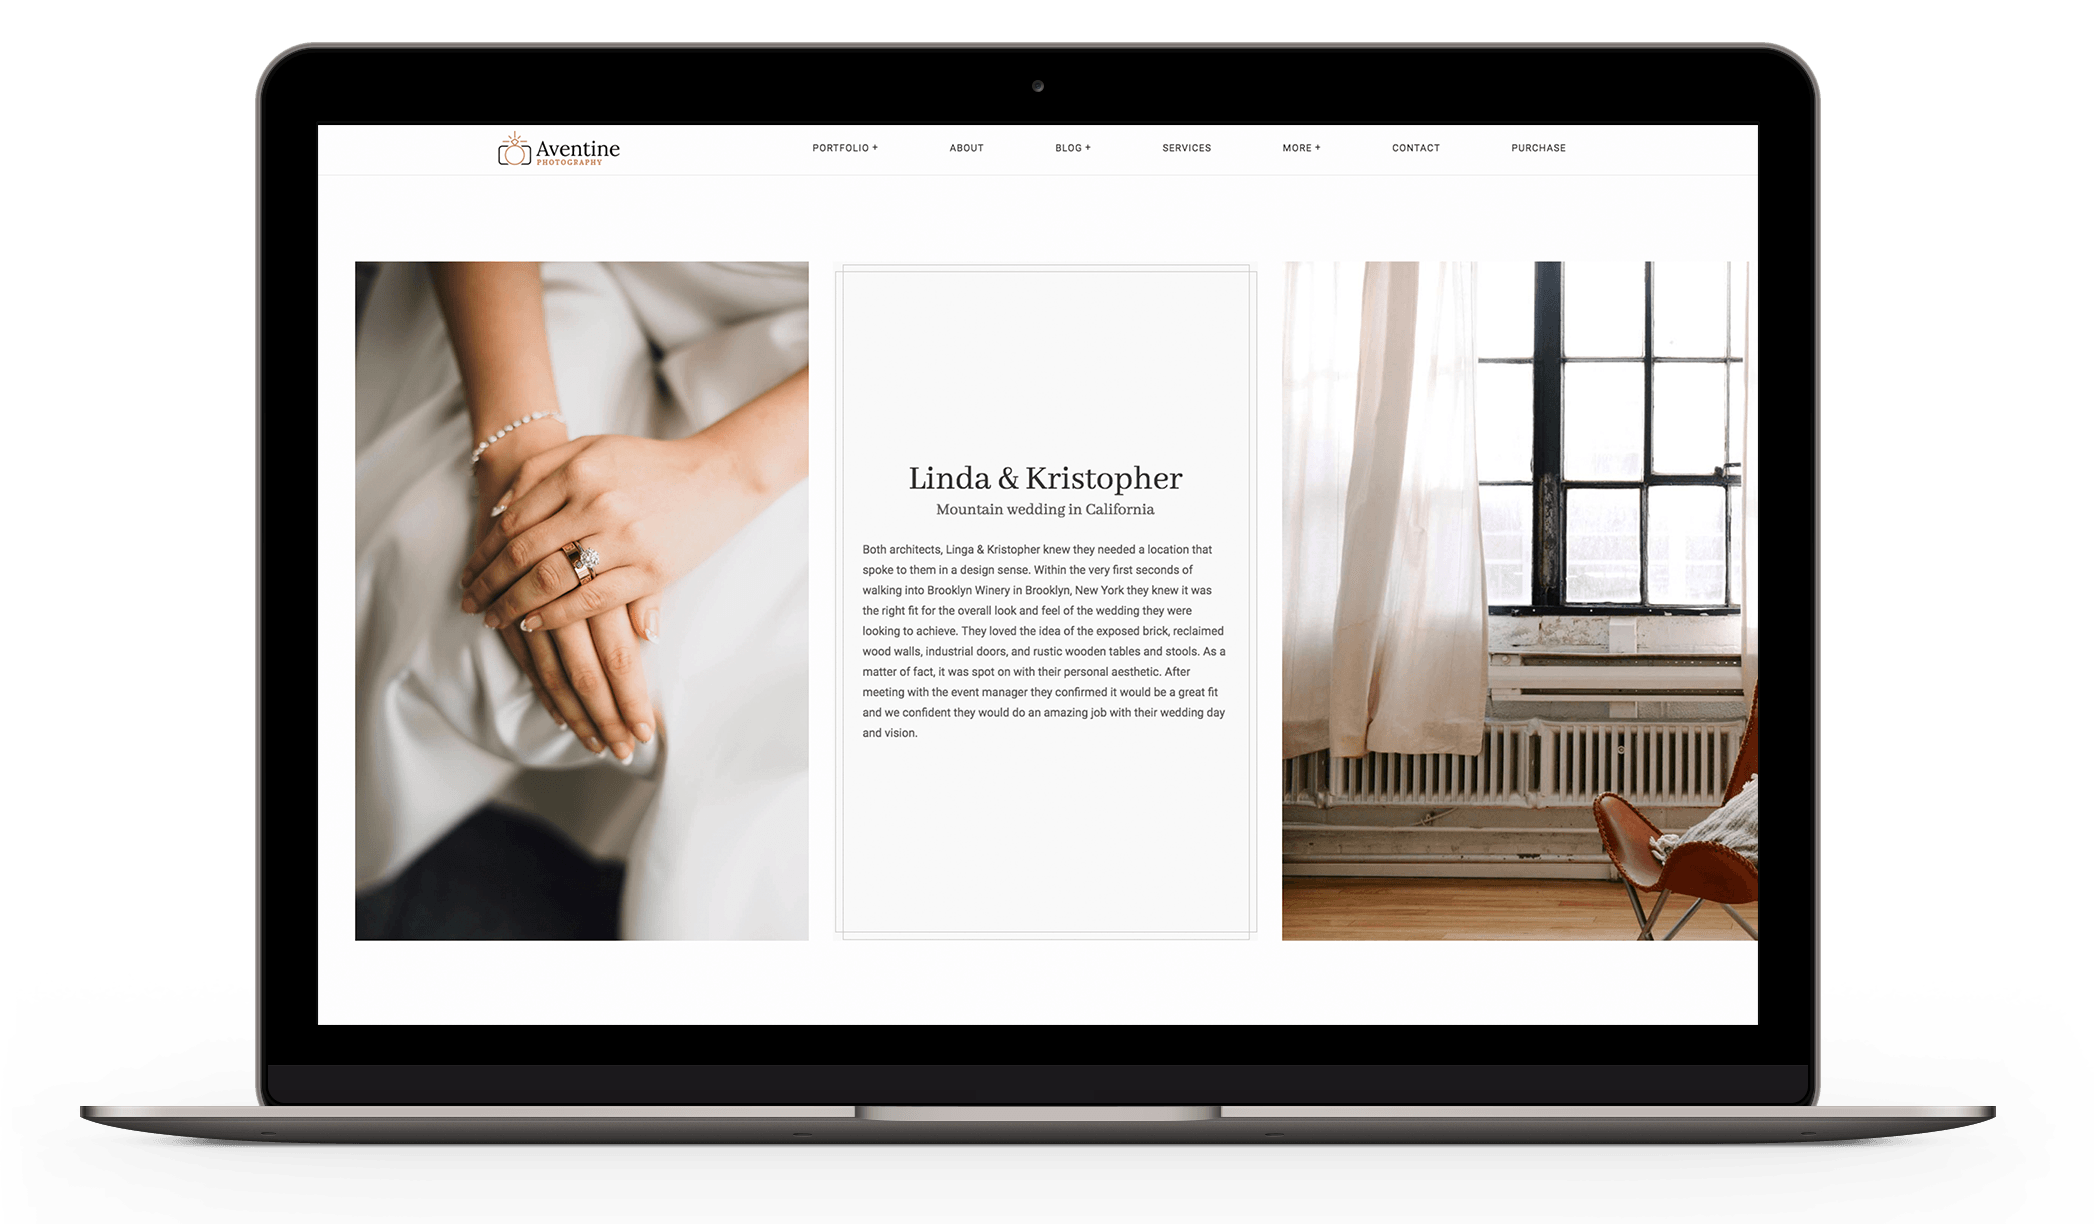 Portfolio WordPress theme for wedding photographers called Aventine